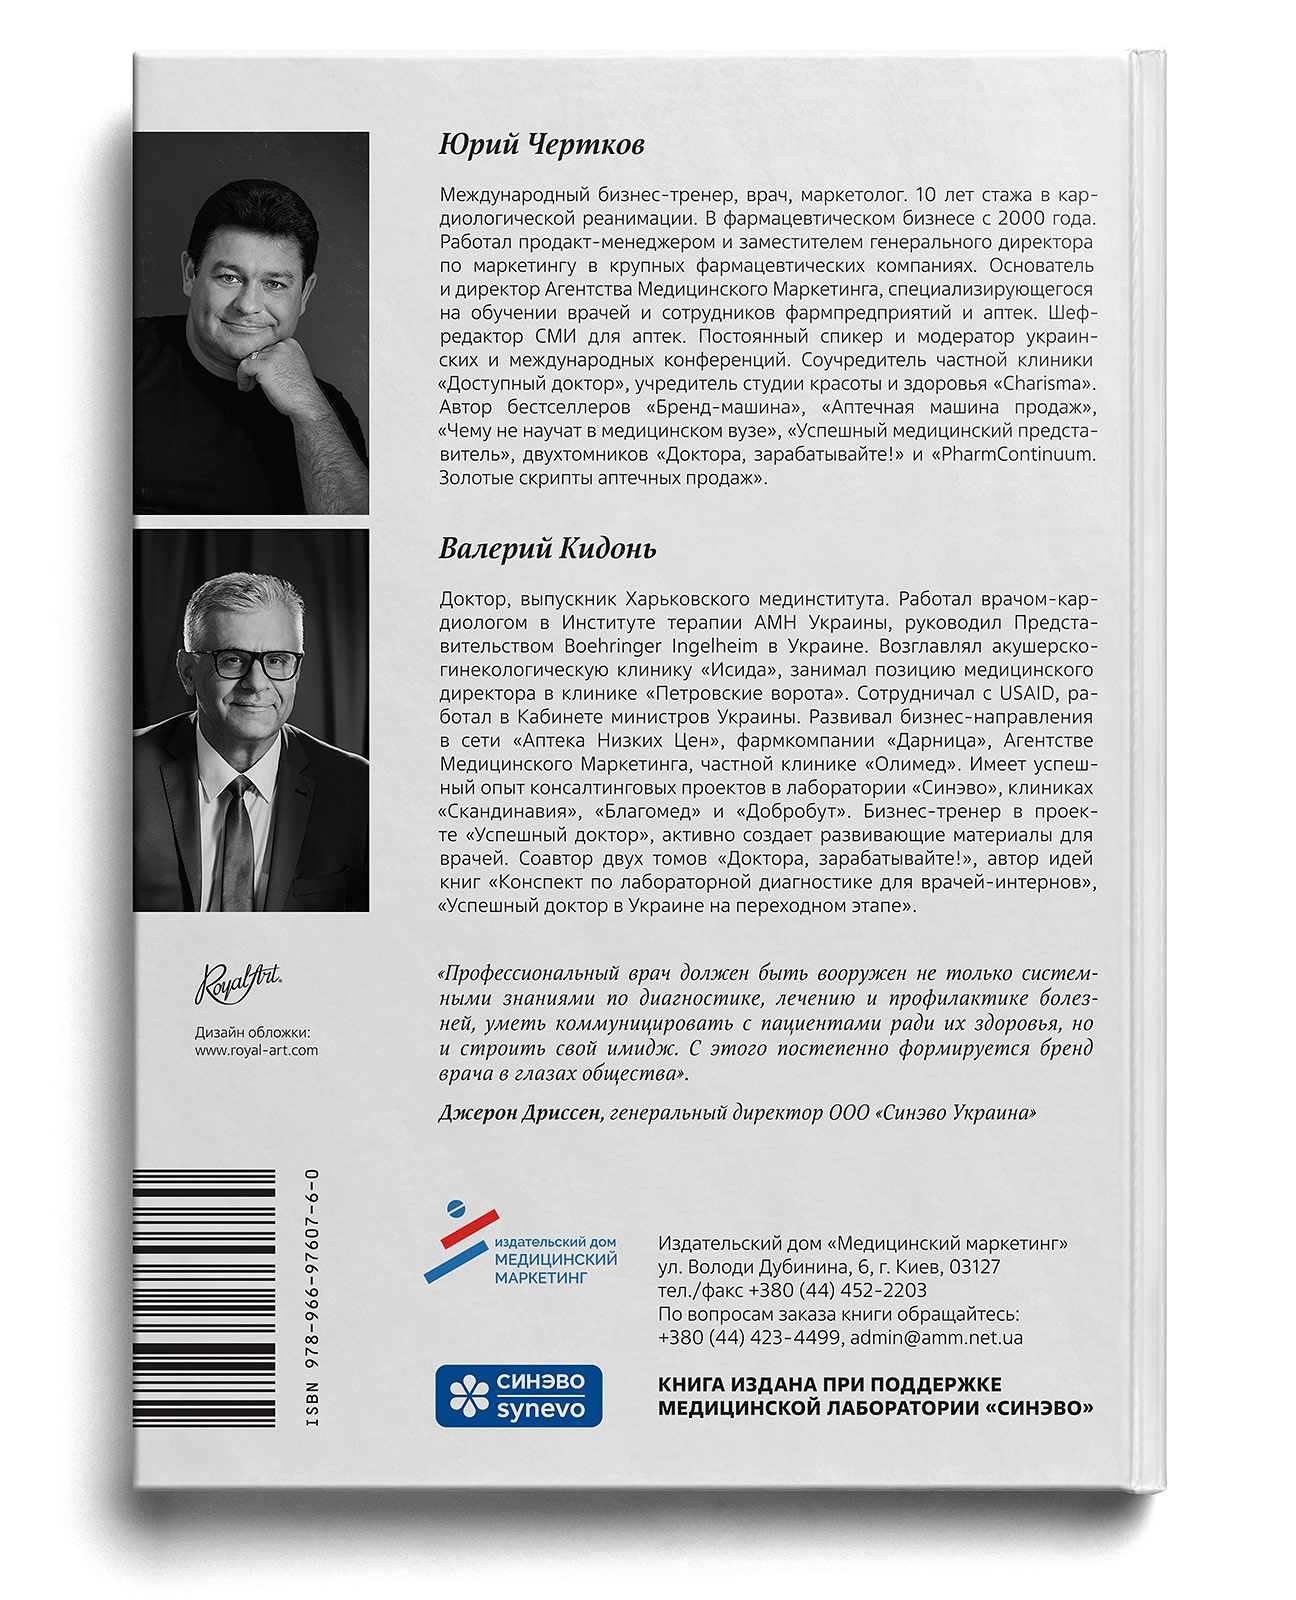 Brand M.D. book. Doctor Brand. Medical Marketing Agency, Yuriy Chertkov and Valeriy Kidon. Synevo laboratory. The back cover.